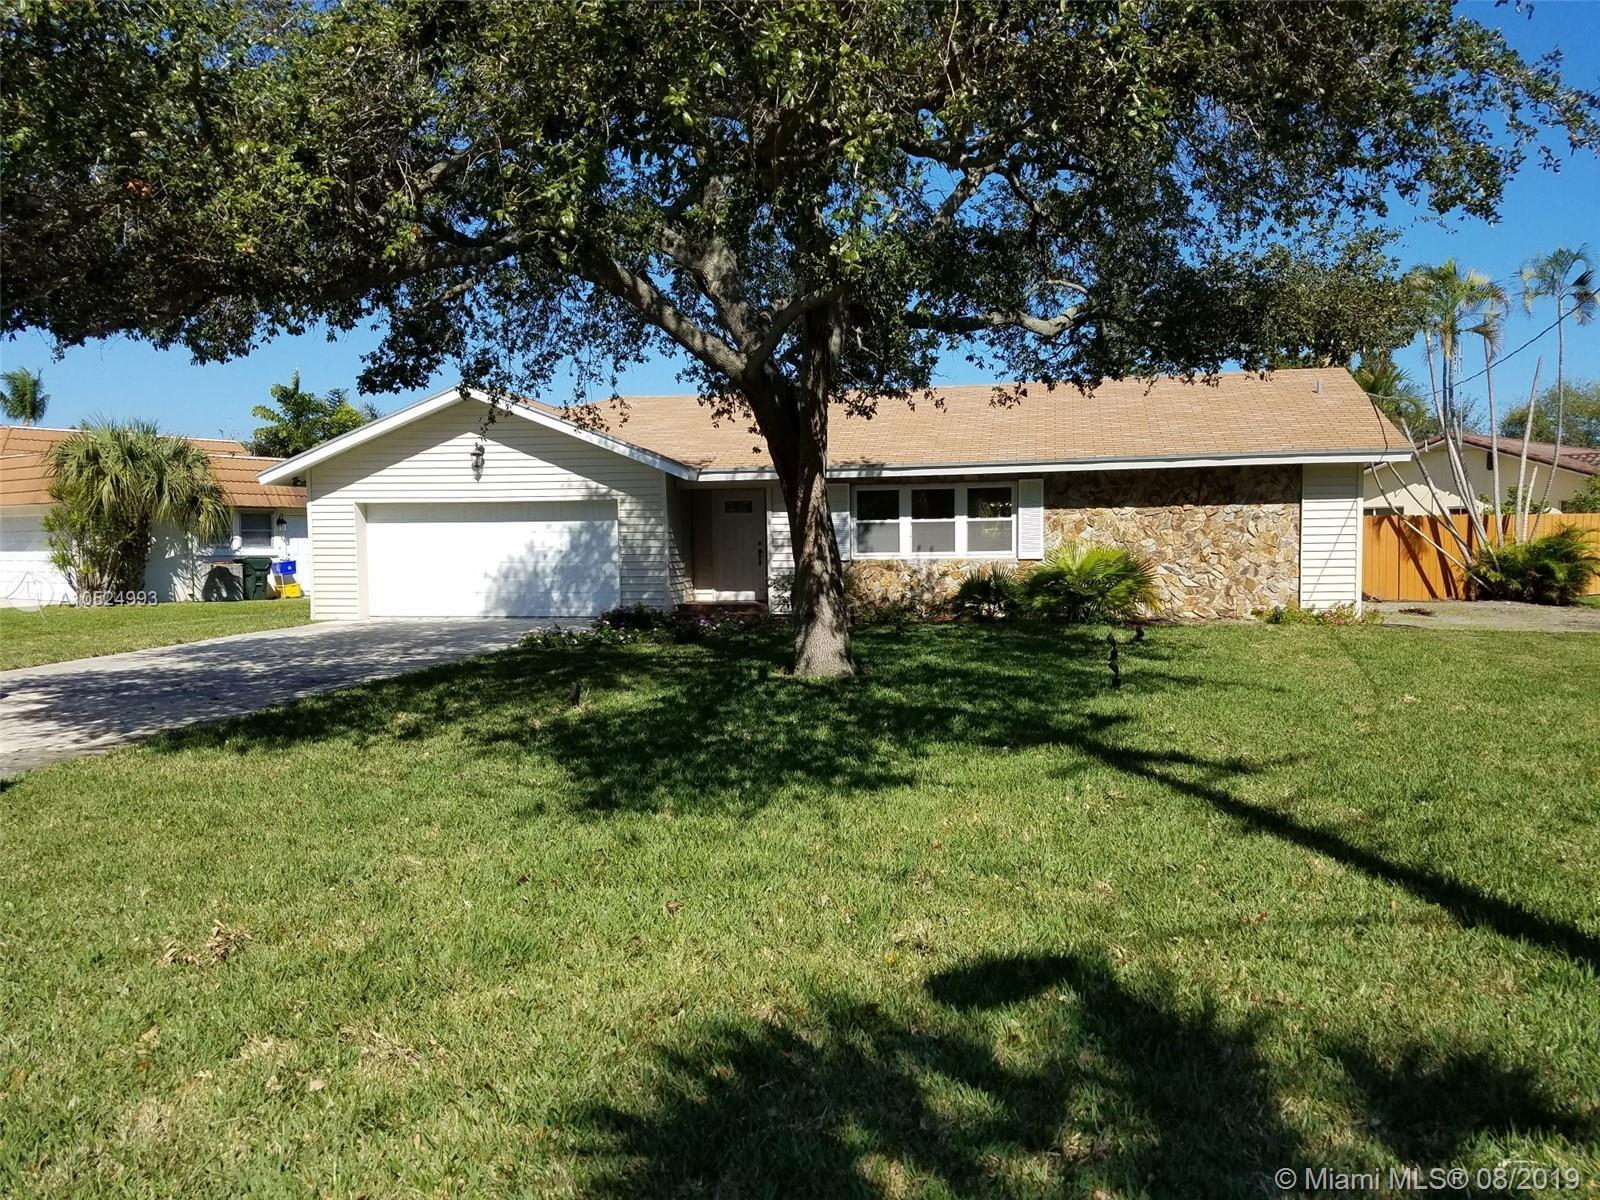 Beautiful landscaped corner lot with plenty of parking on the concrete driveway leading to your two